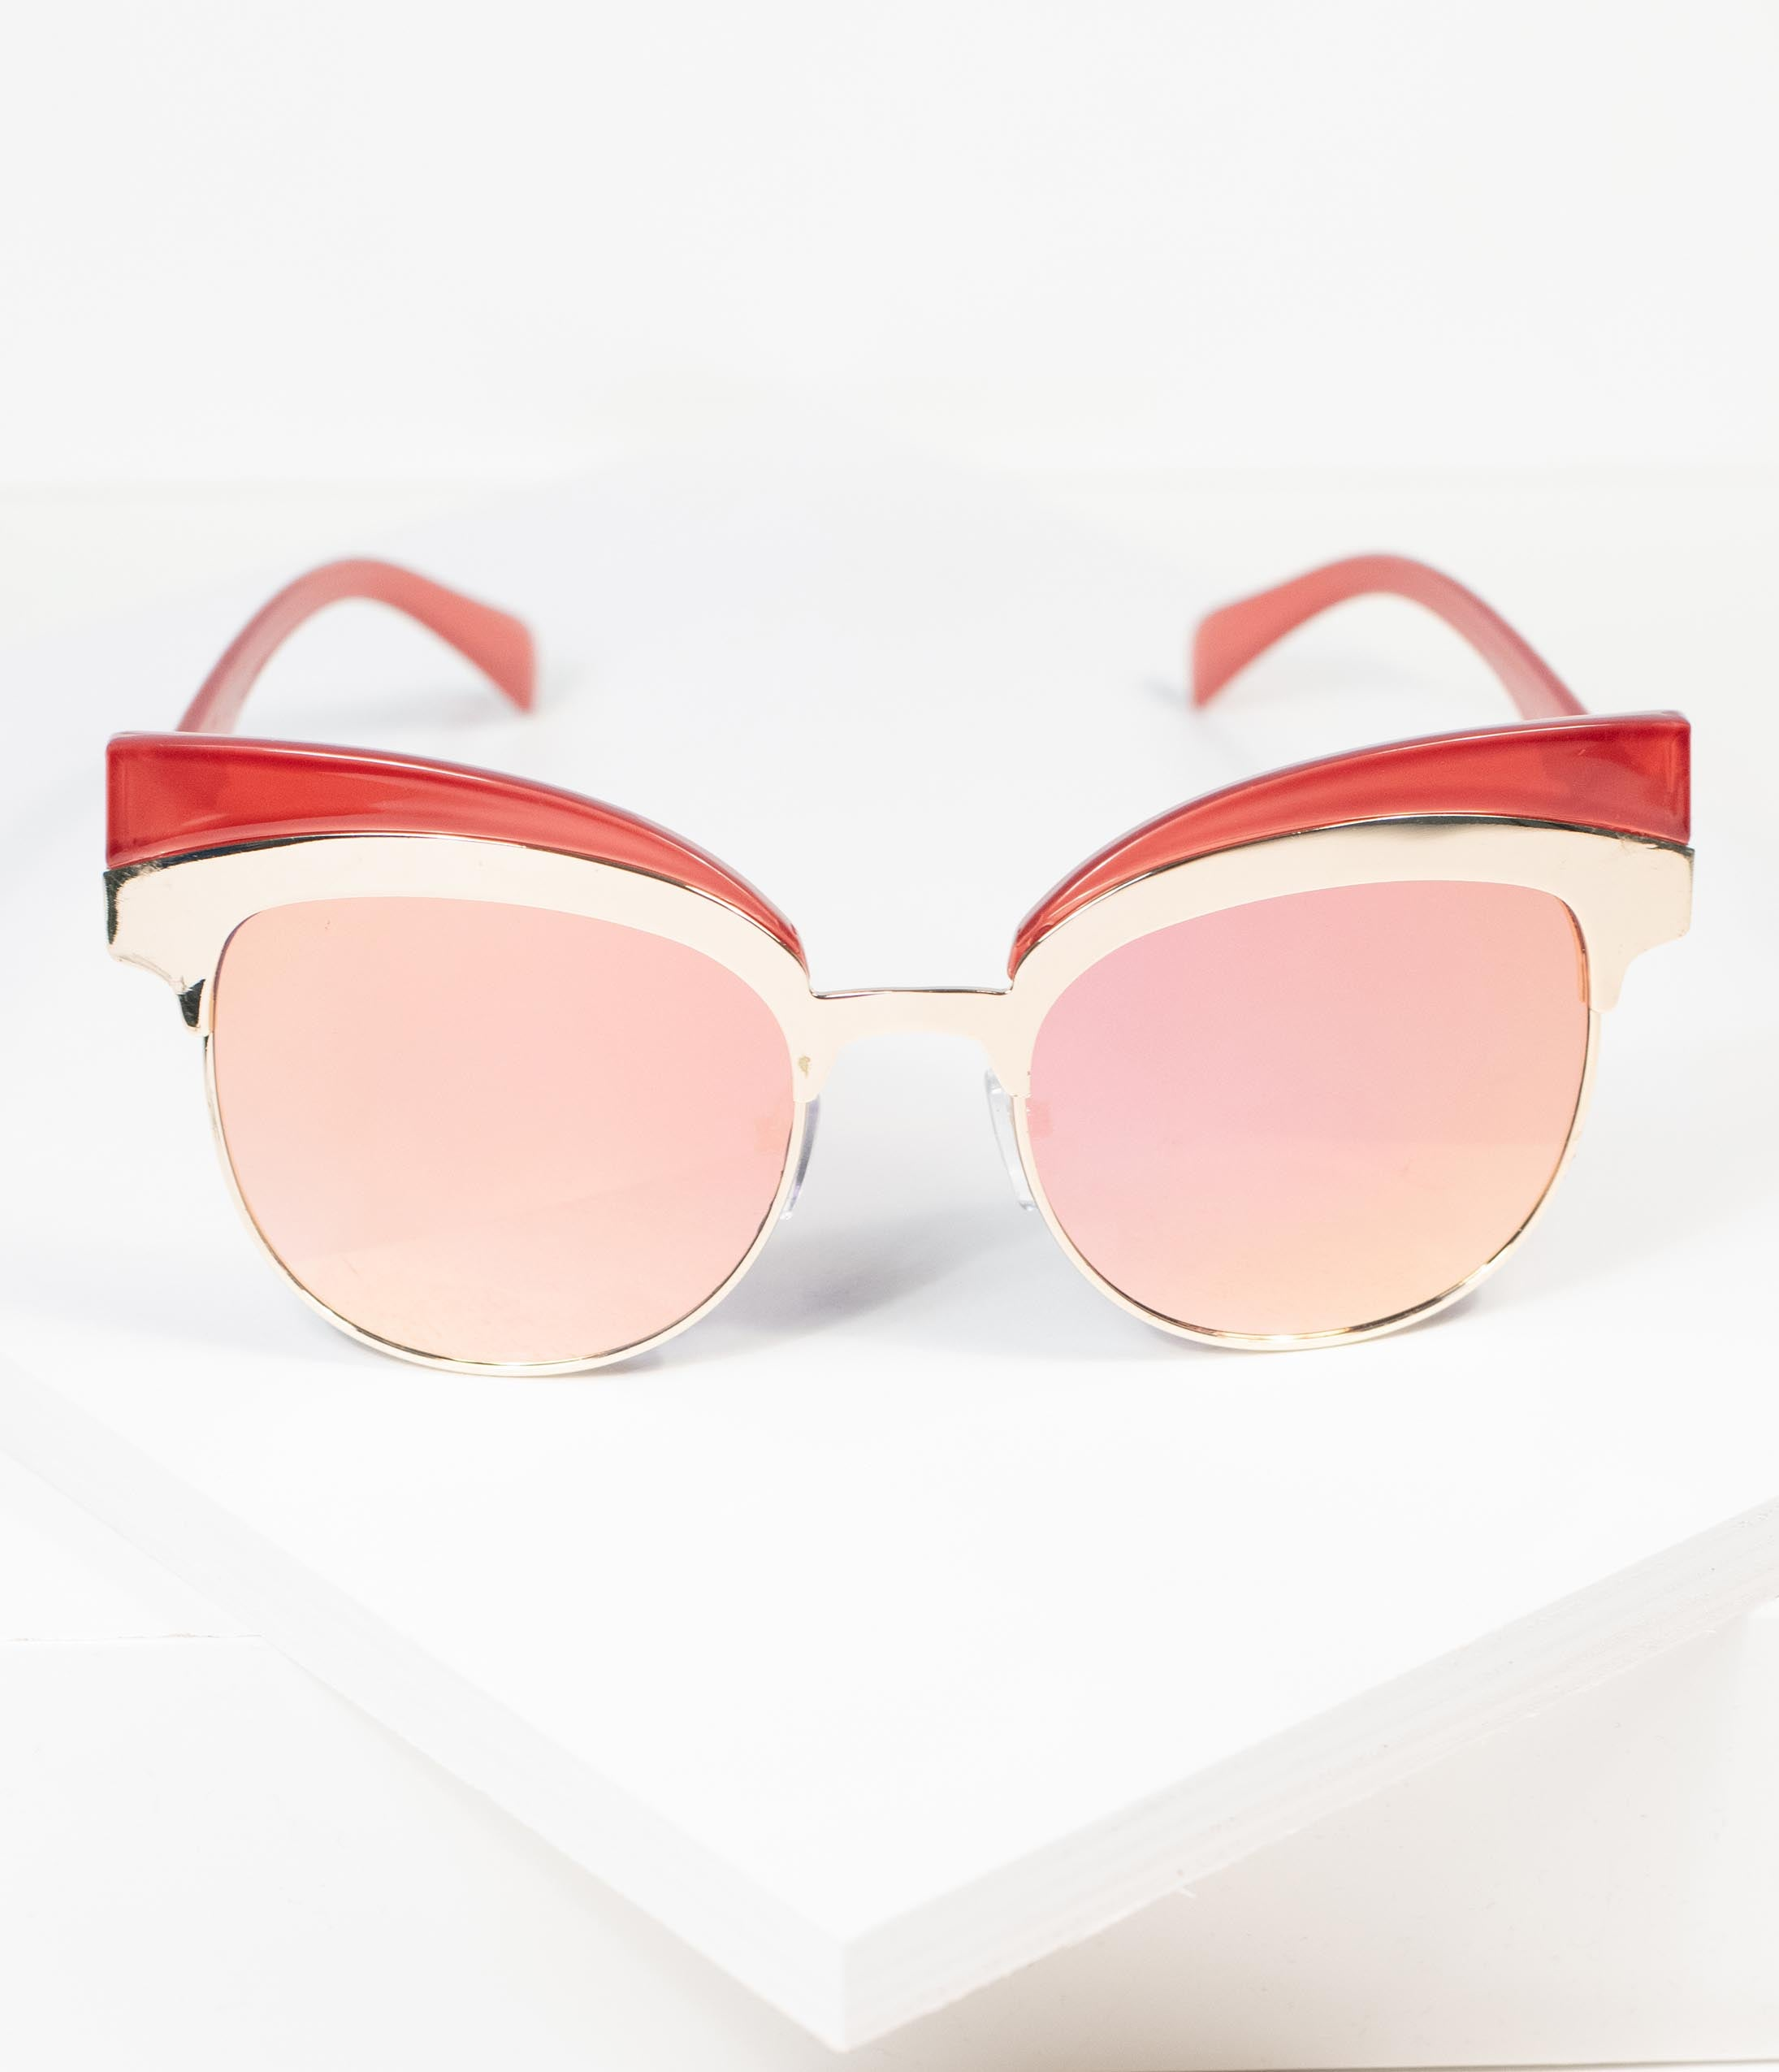 1950s Sunglasses & 50s Glasses | Retro Cat Eye Sunglasses Retro Red  Gold Reign Cat Eye Sunglasses $24.00 AT vintagedancer.com